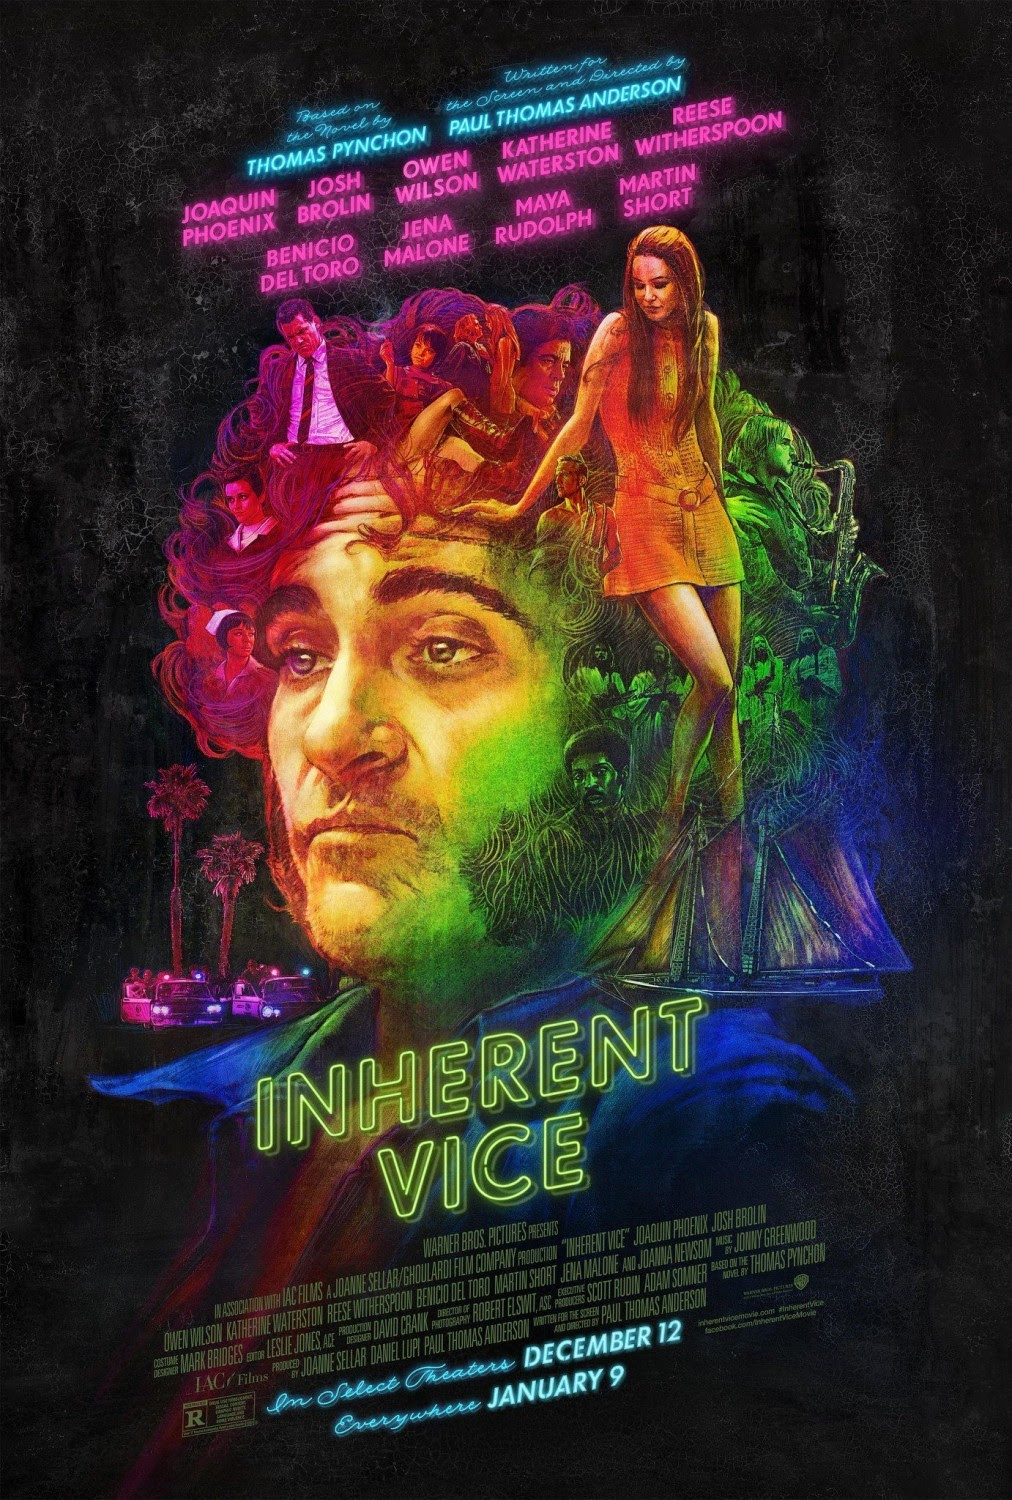 poster for Inherent Vice